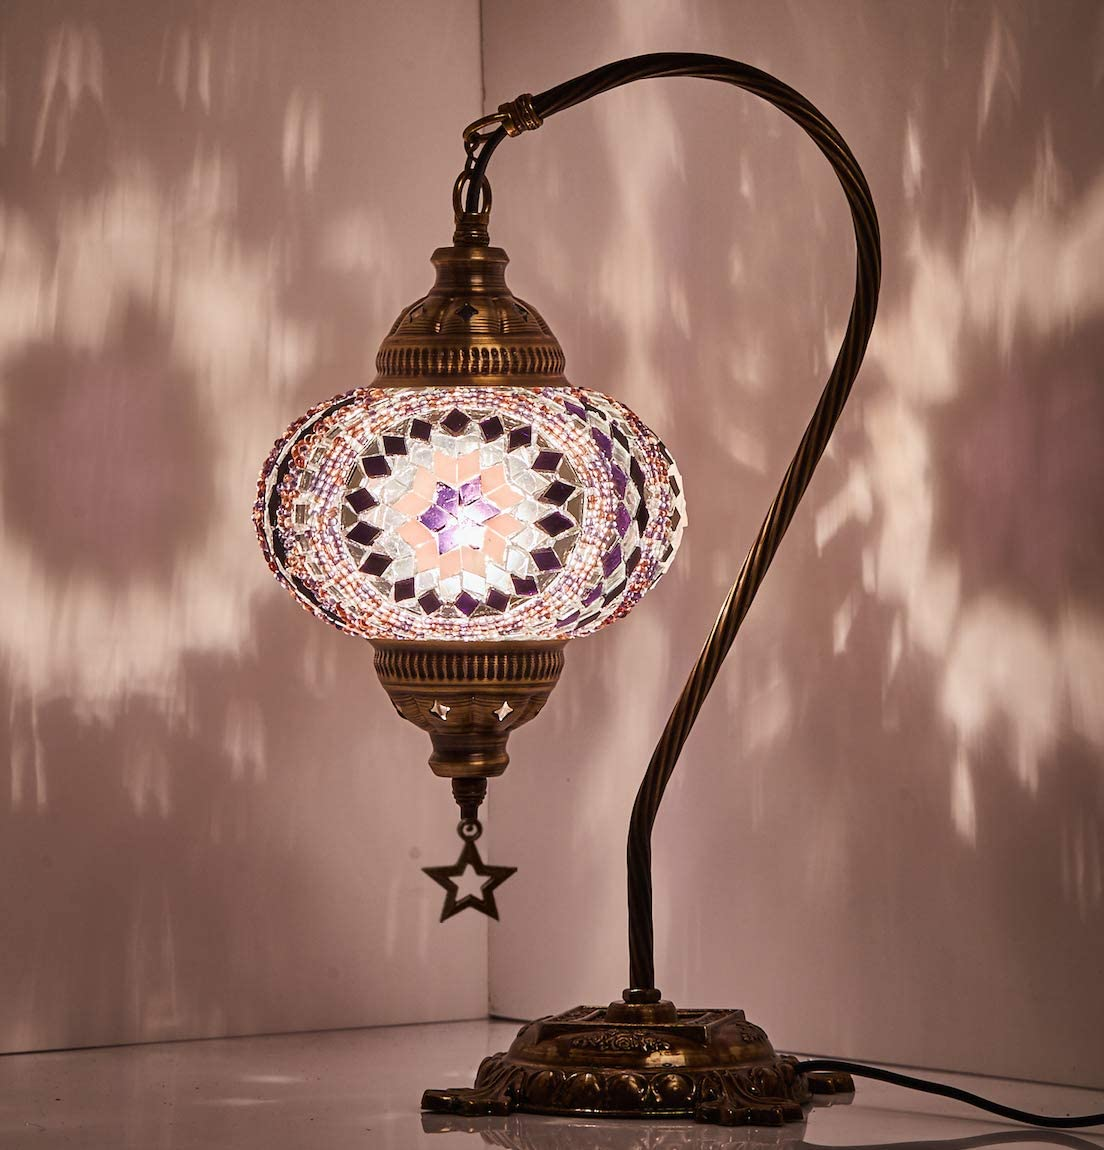 (18 Variations) Newest CopperBull 2018 Turkish Moroccan Tiffany Style Handmade Mosaic Table Desk Bedside Night Swan Neck Lamp Light Lampshade, 42cm (11)